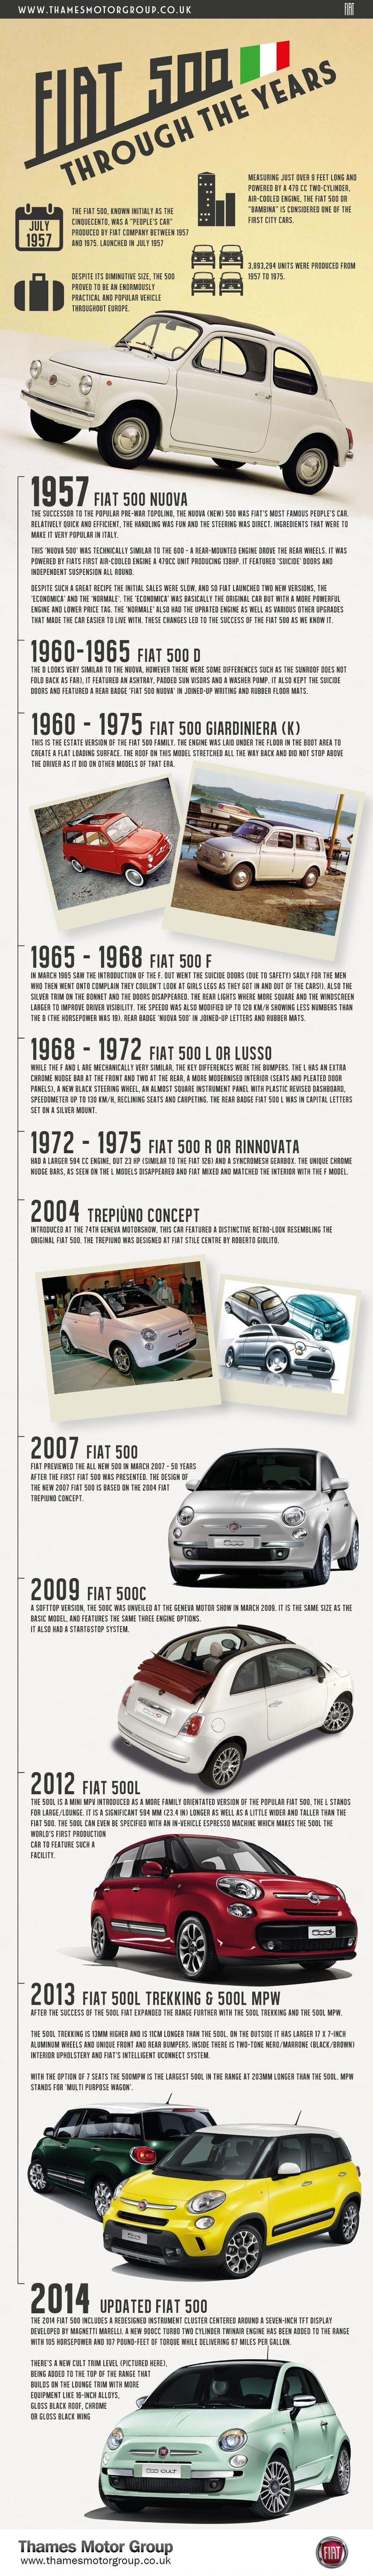 Infographic: FIAT 500 Through The Years #infographic